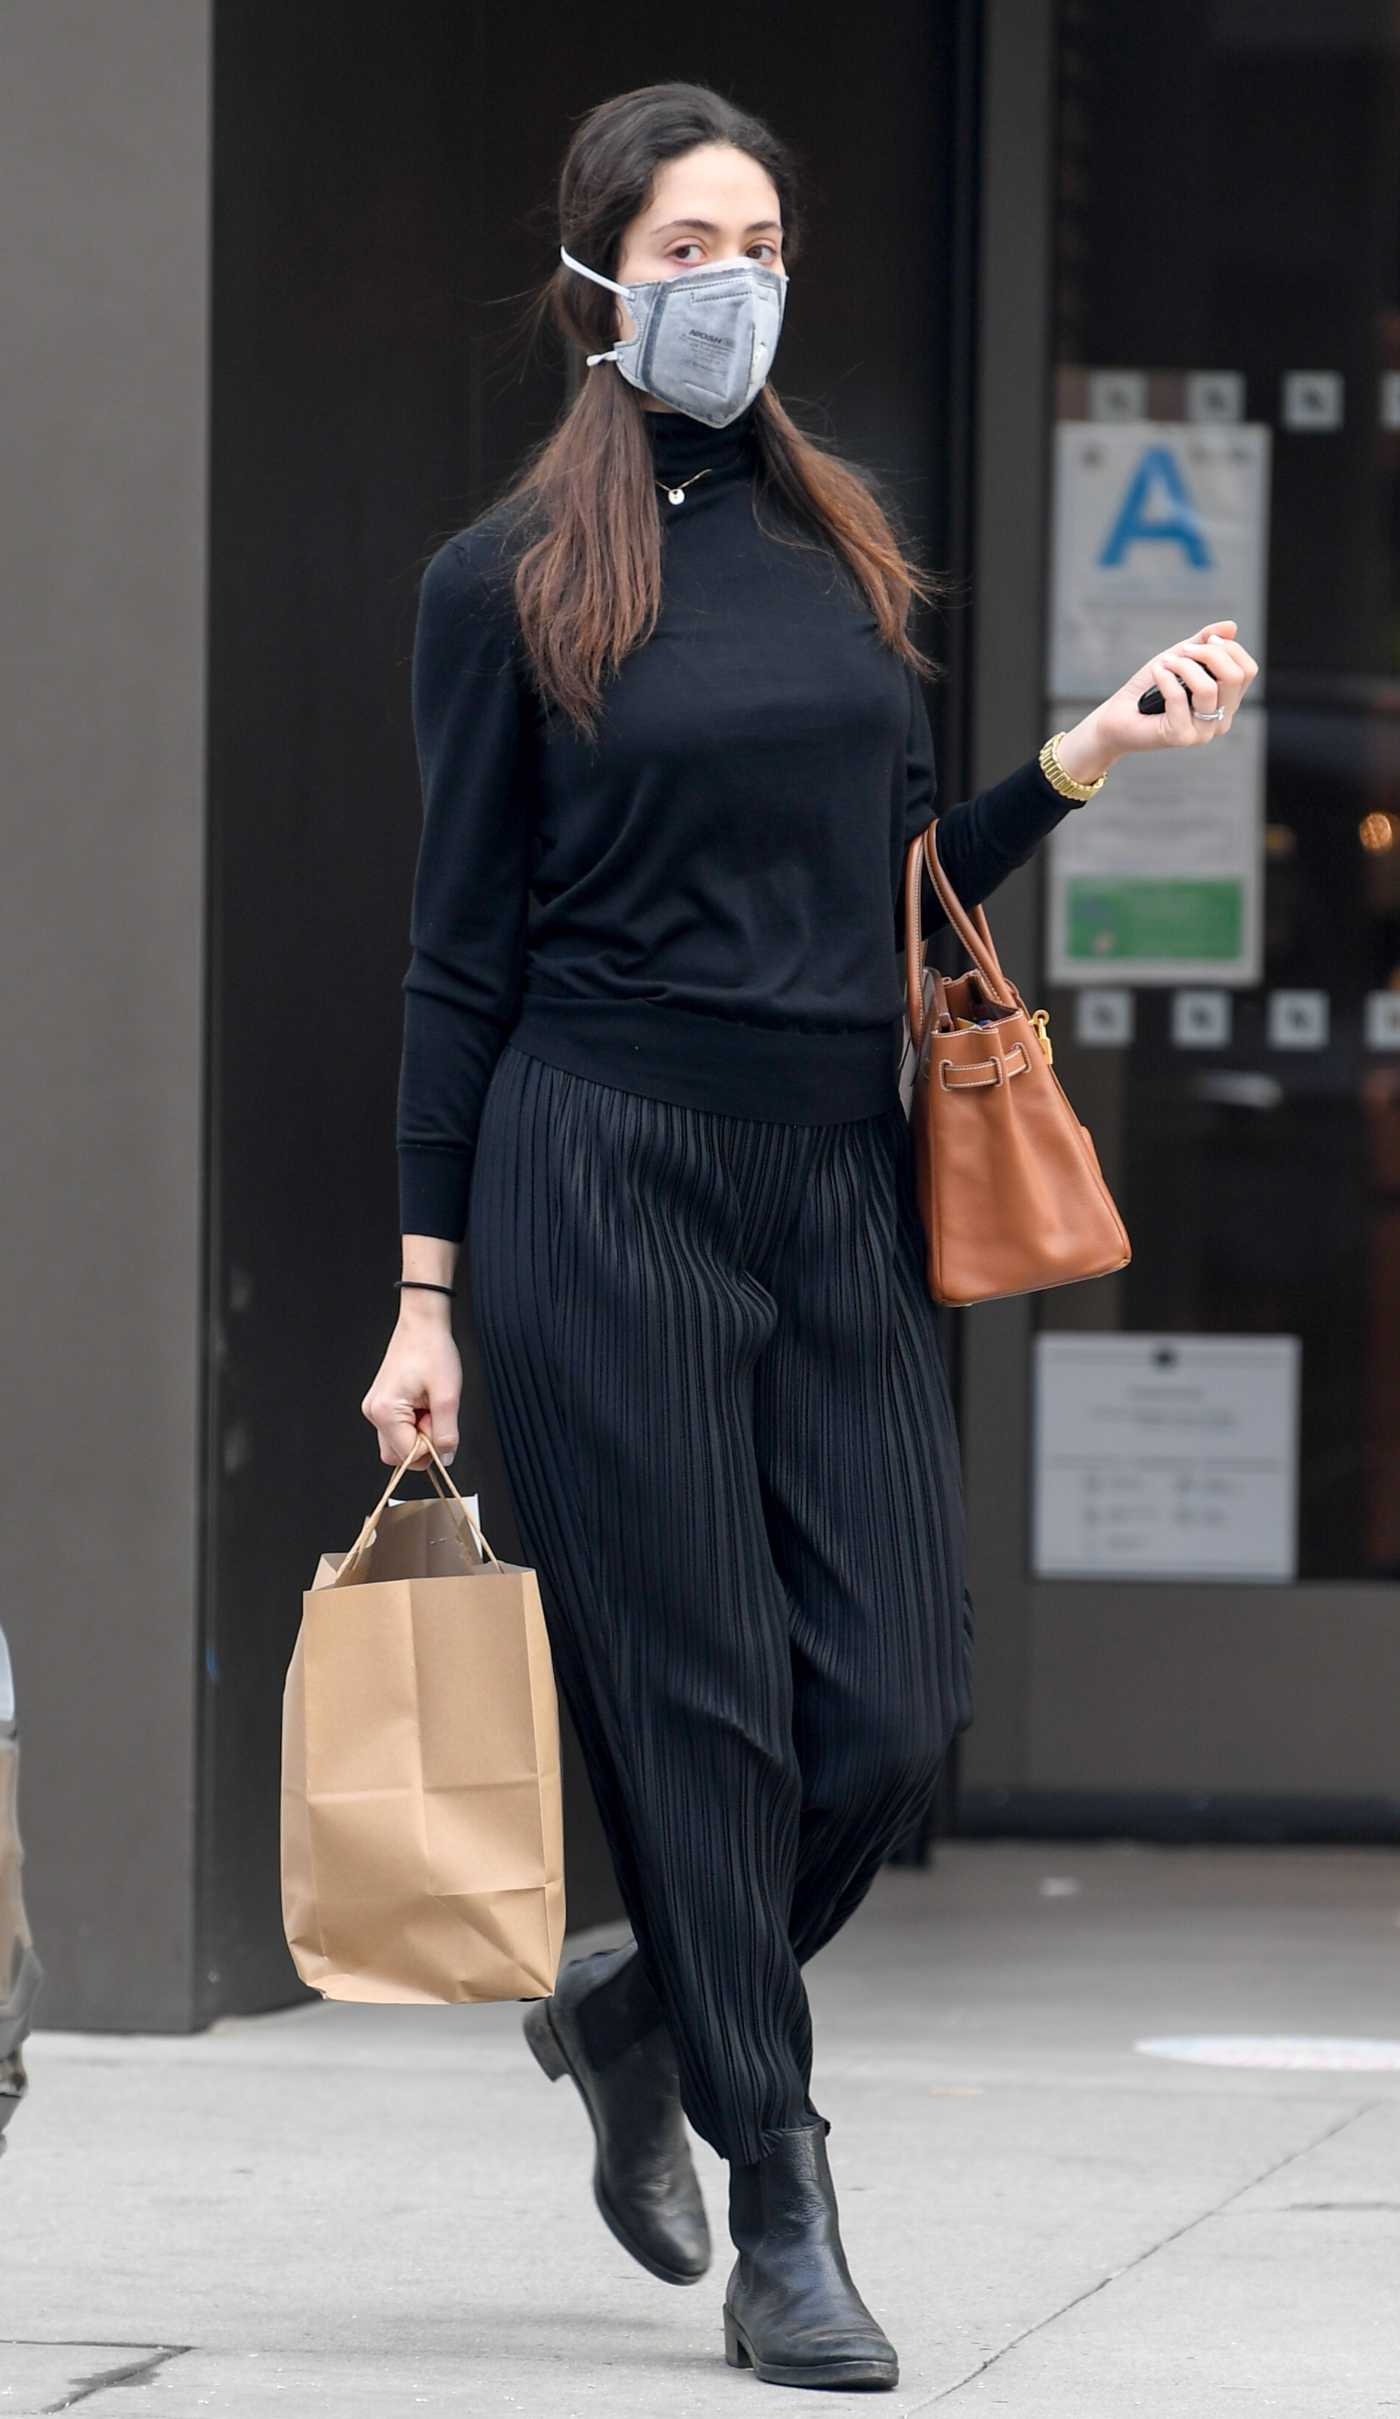 Emmy Rossum in a Black Outfit Picks Up Breakfast in Beverly Hills 12/13/2020